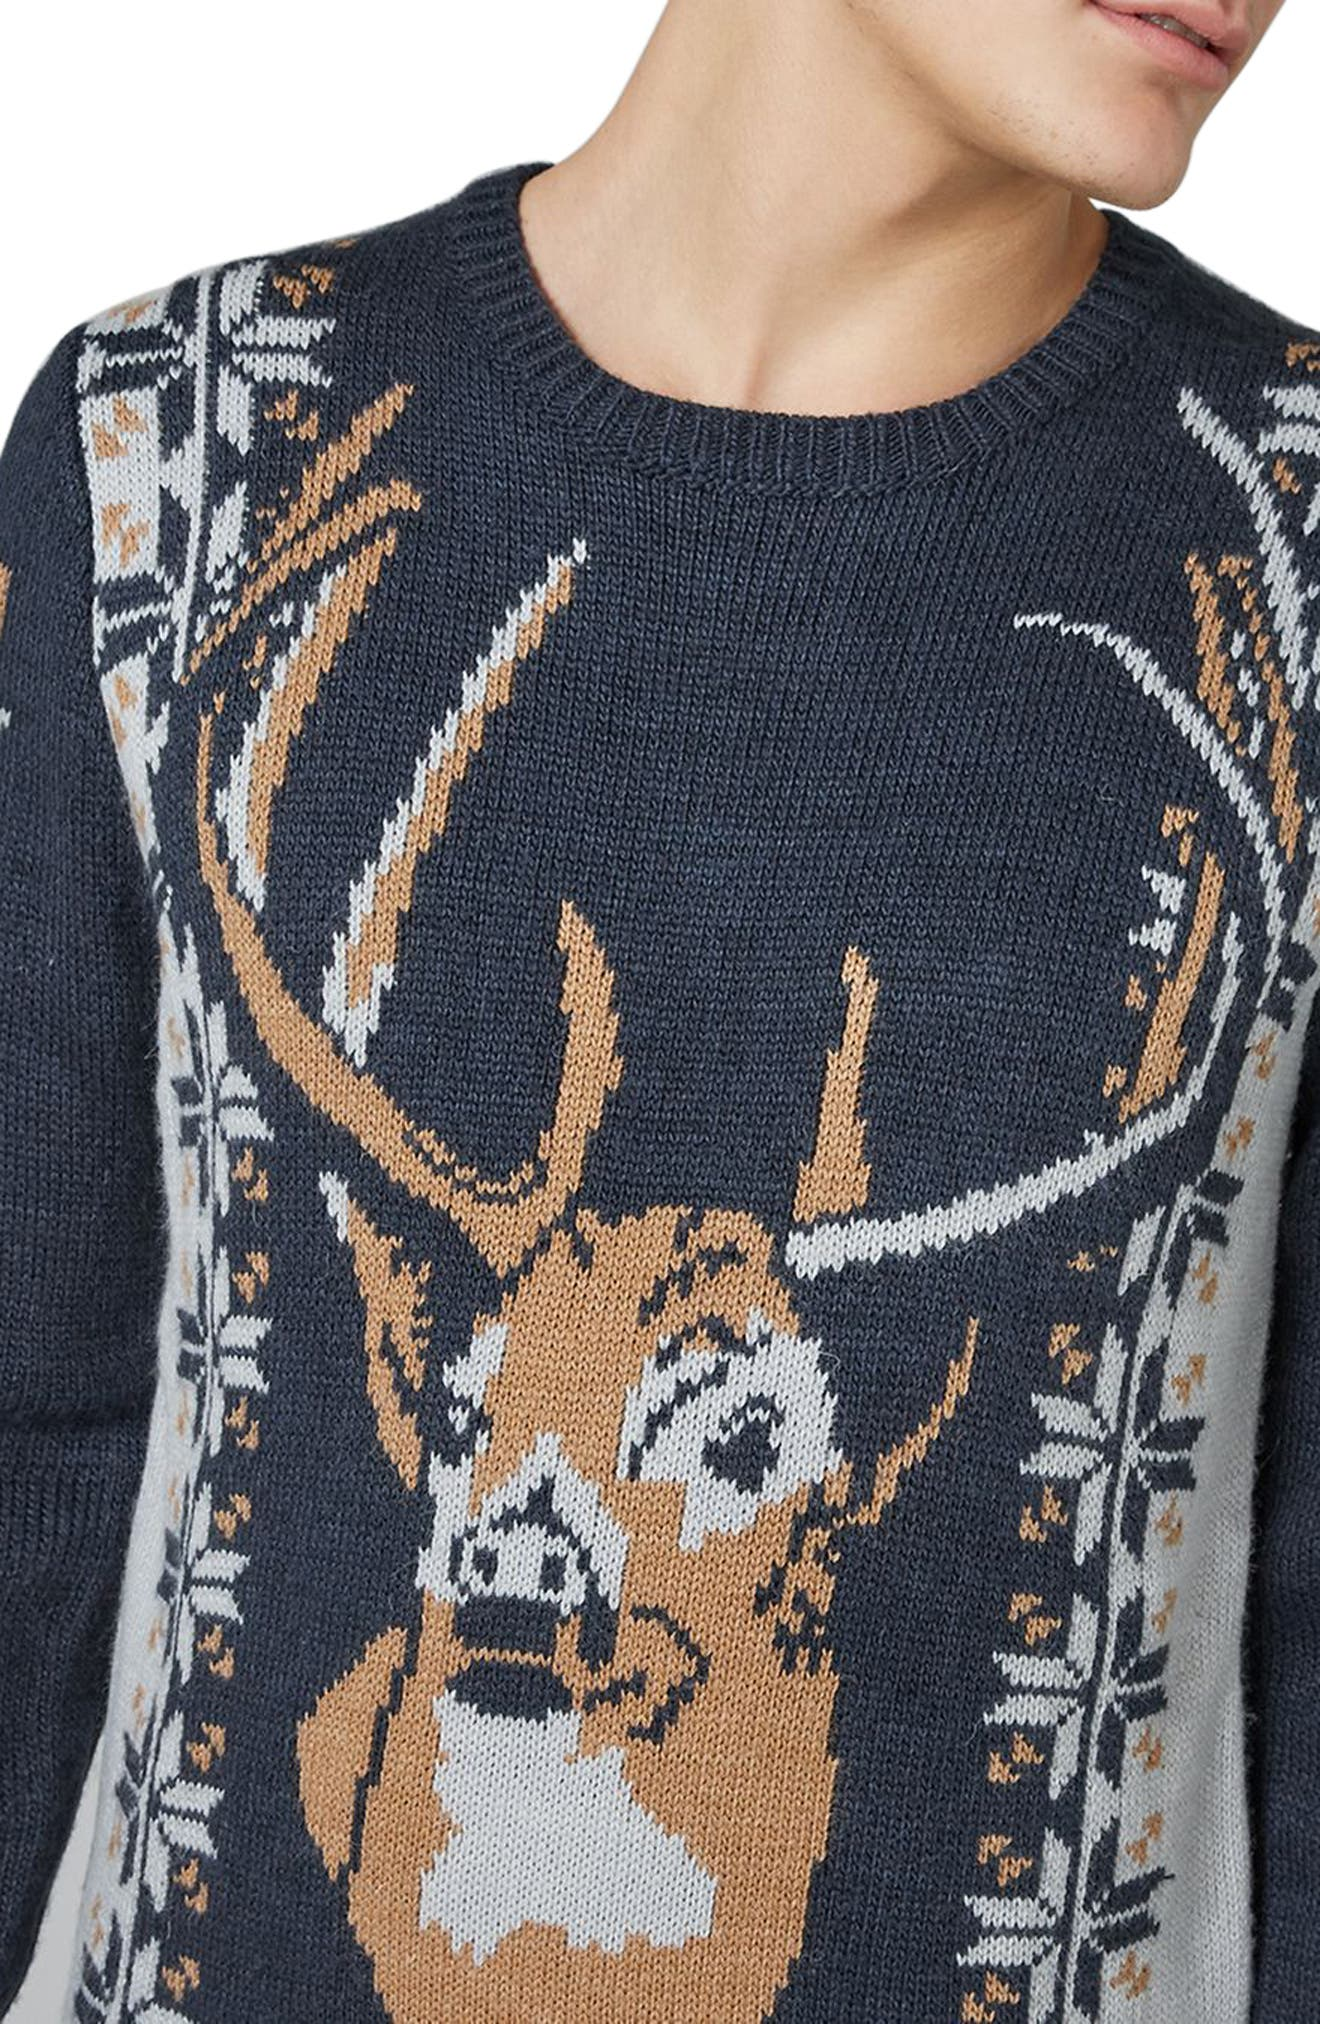 Vintage Stag Sweater,                             Alternate thumbnail 3, color,                             Navy Blue Multi